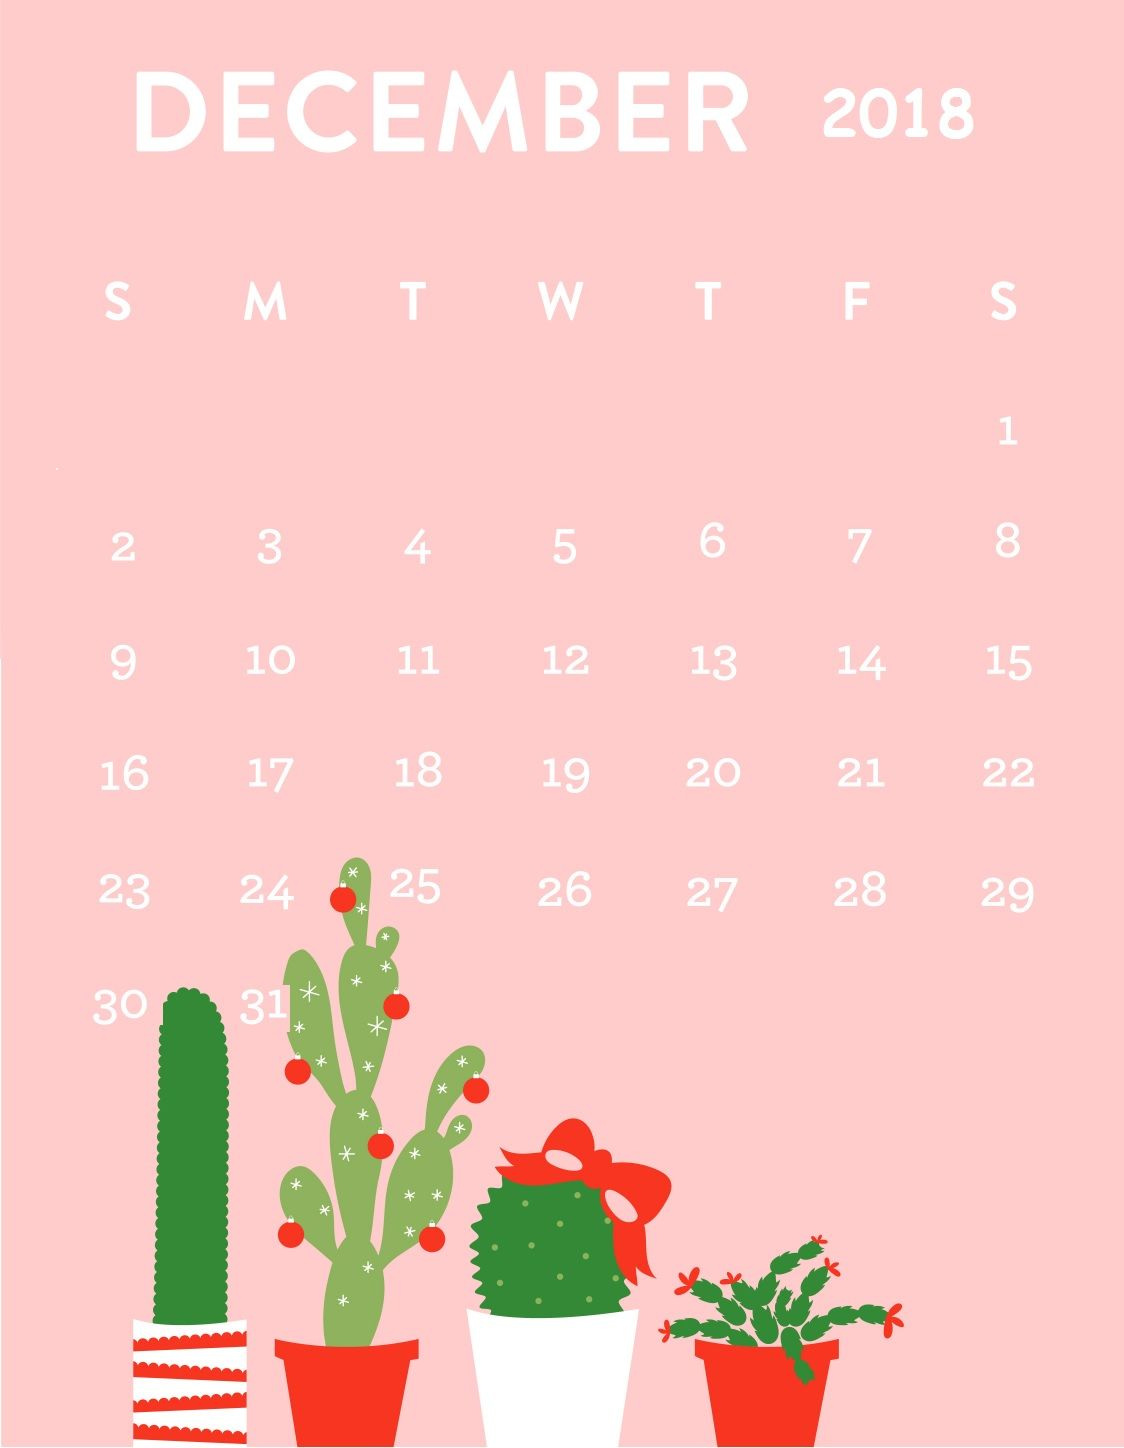 december 2018 calendar iphone wallpaper hold the phone in rh pinterest com